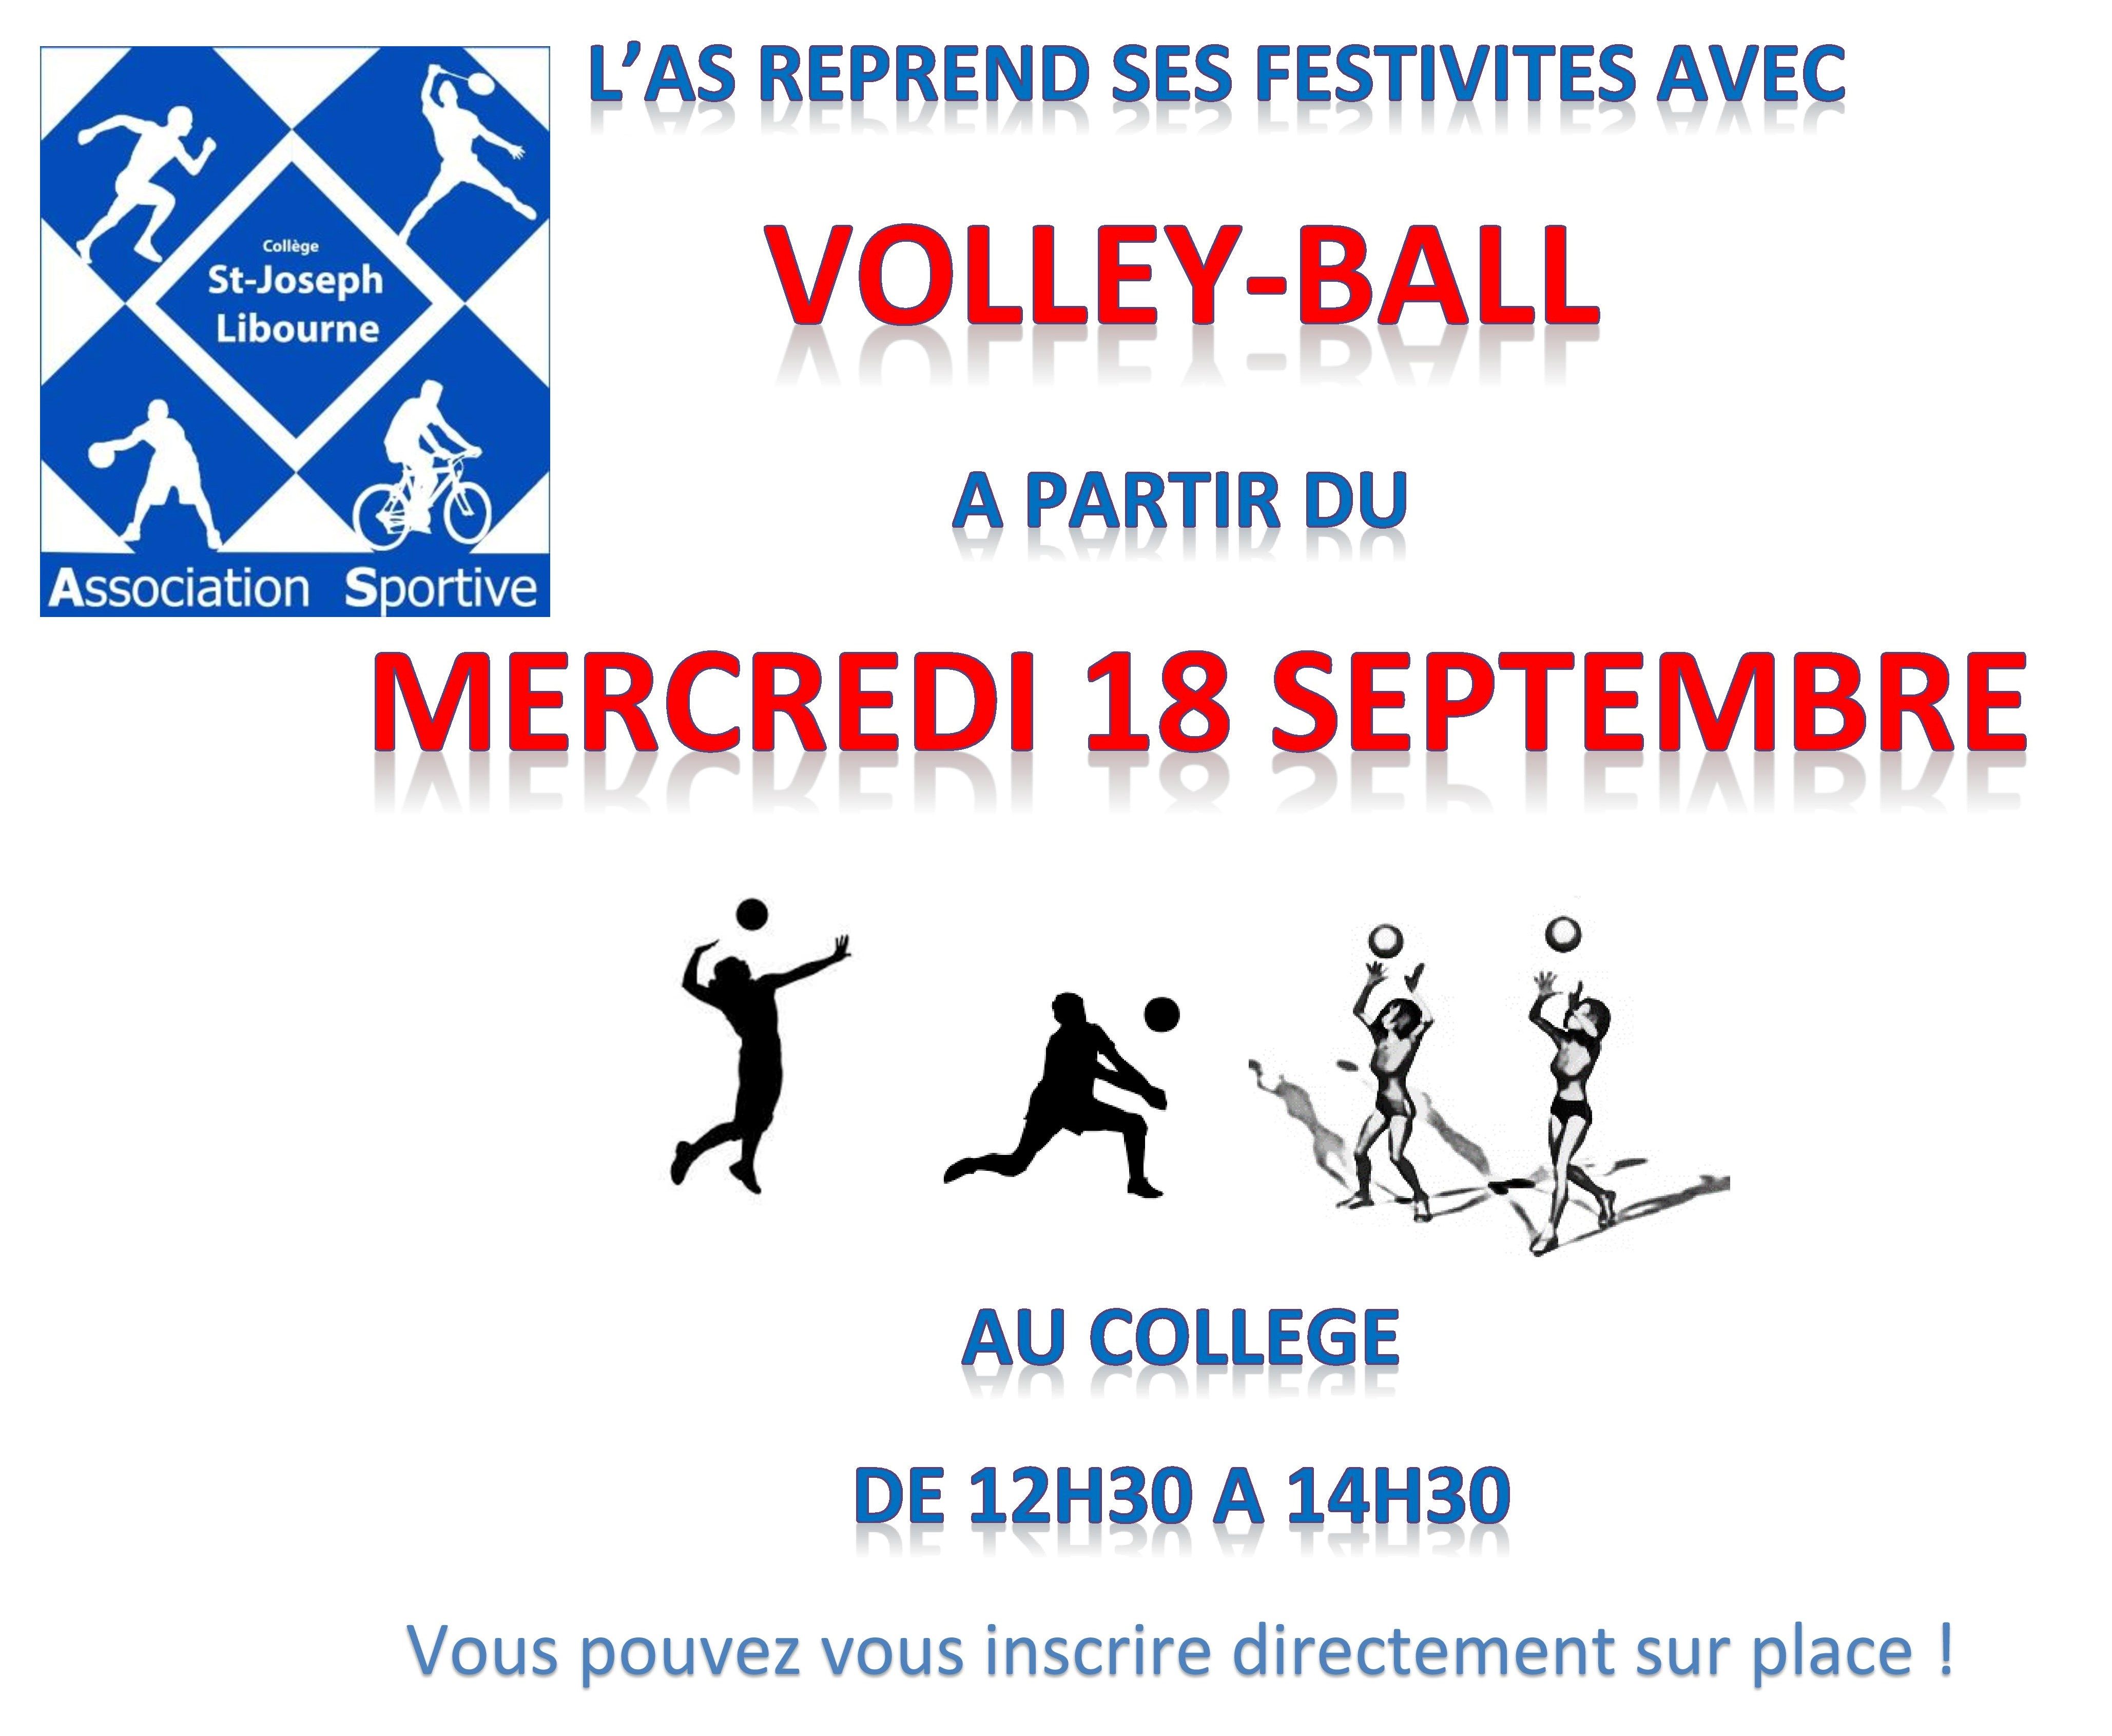 Lire la suite : UGSEL Volley ball